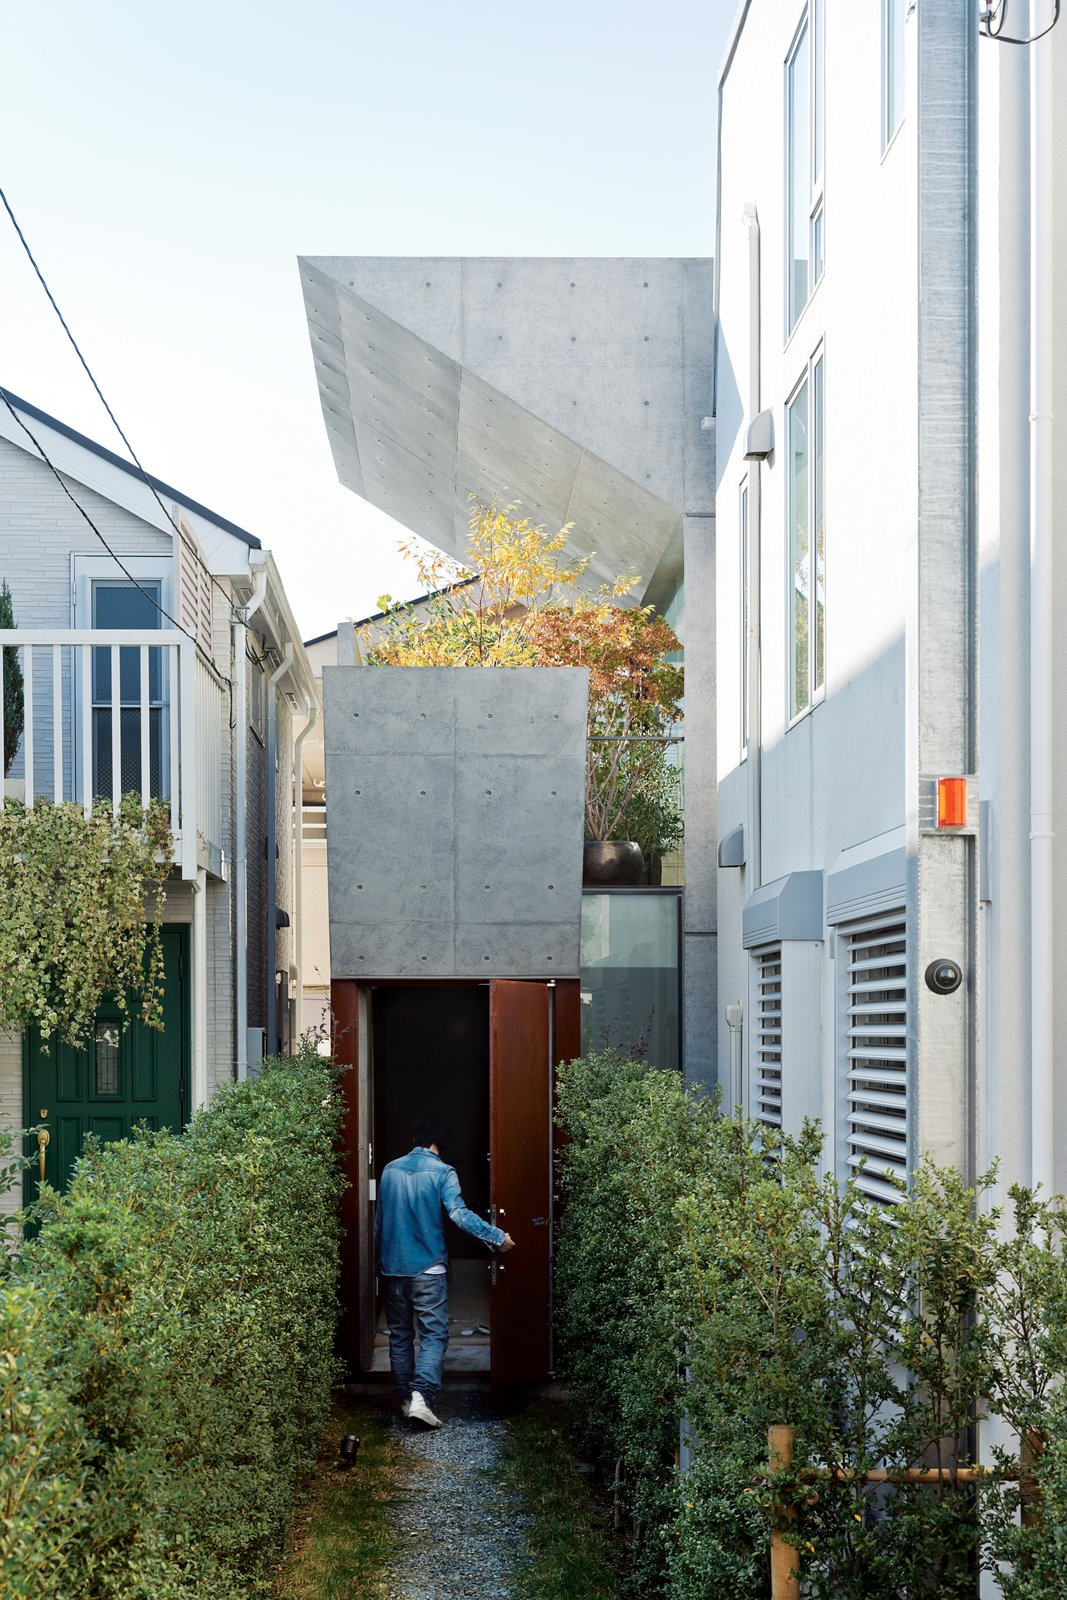 Outdoor, Walkways, Side Yard, Gardens, Shrubs, Front Yard, and Garden After purchasing a thin, L-shaped lot in Tokyo, Tamotsu Nakada asked architect and friend Koji Tsutsui to create an open-plan concrete home to fit the site.  Photo 1 of 7 in Open-Plan Concrete Home in Japan